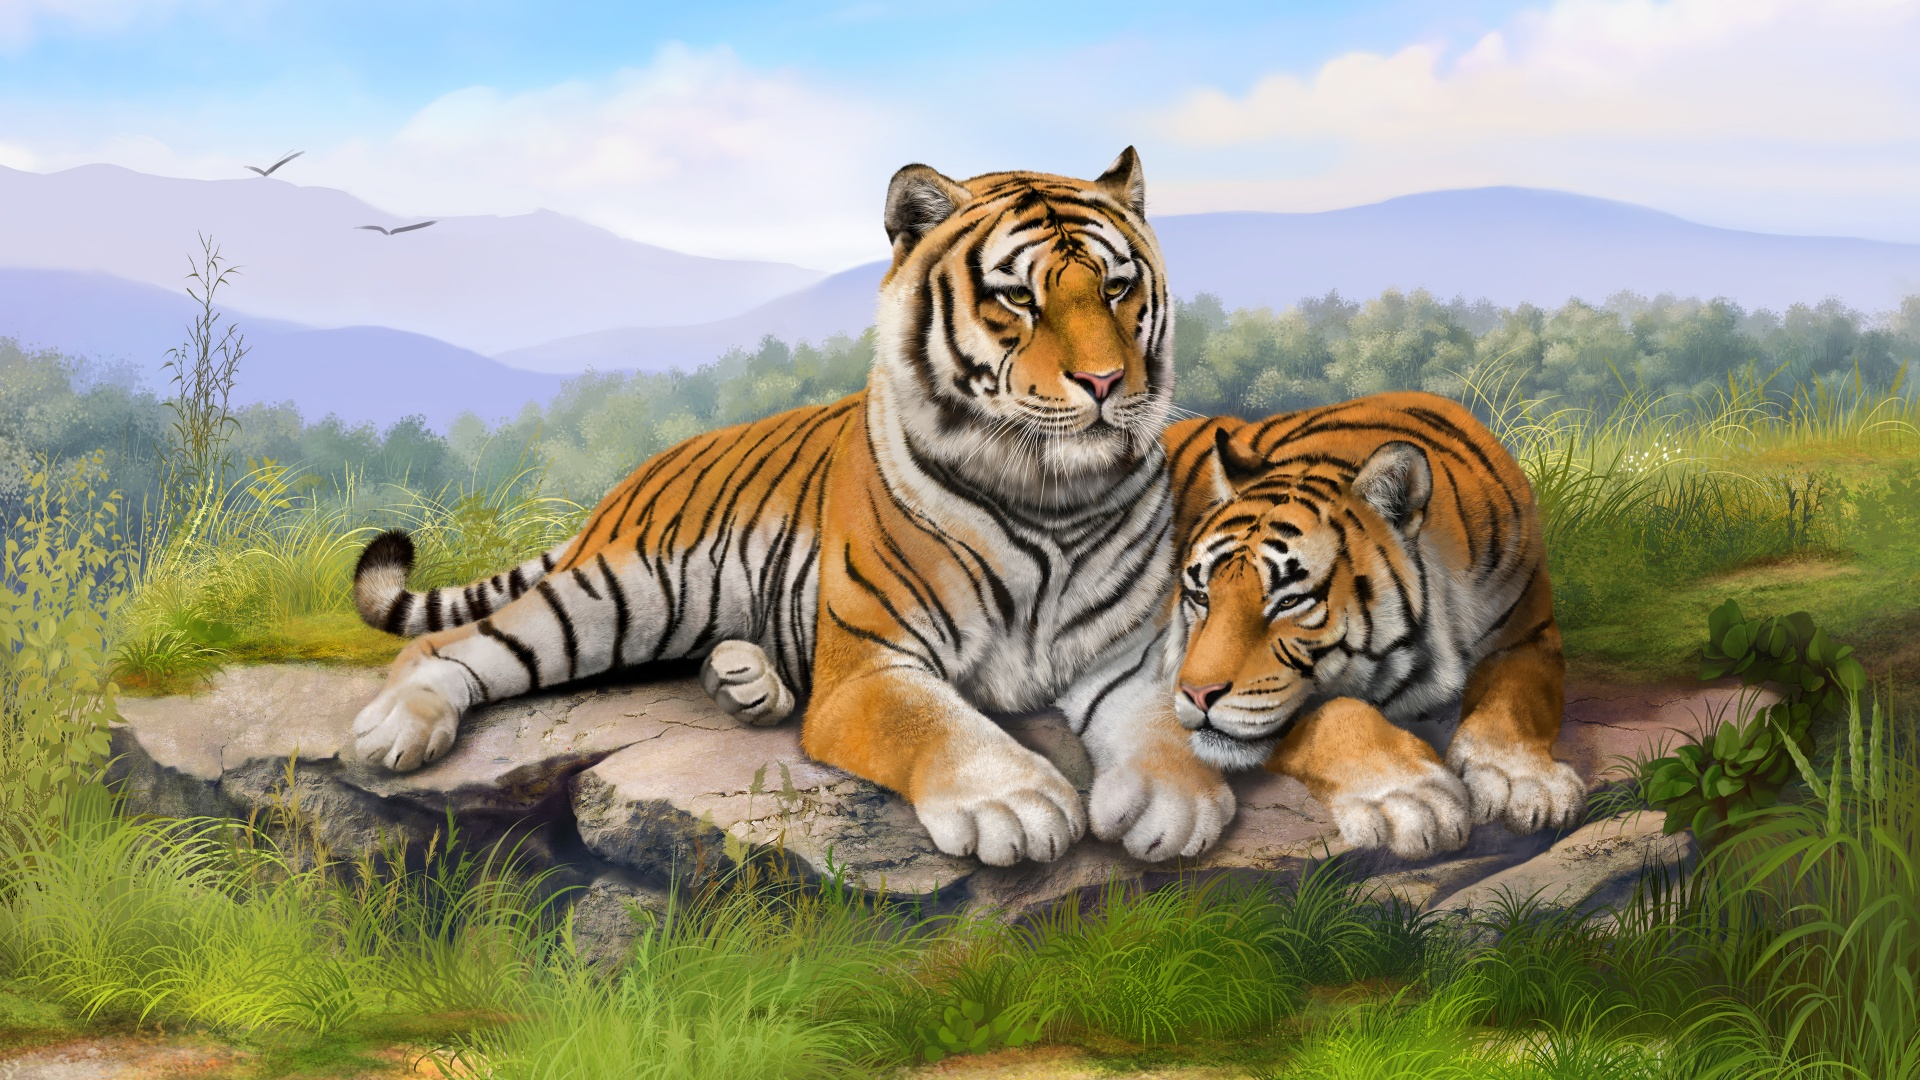 Tigers Art Wallpapers In Jpg Format For Free Download